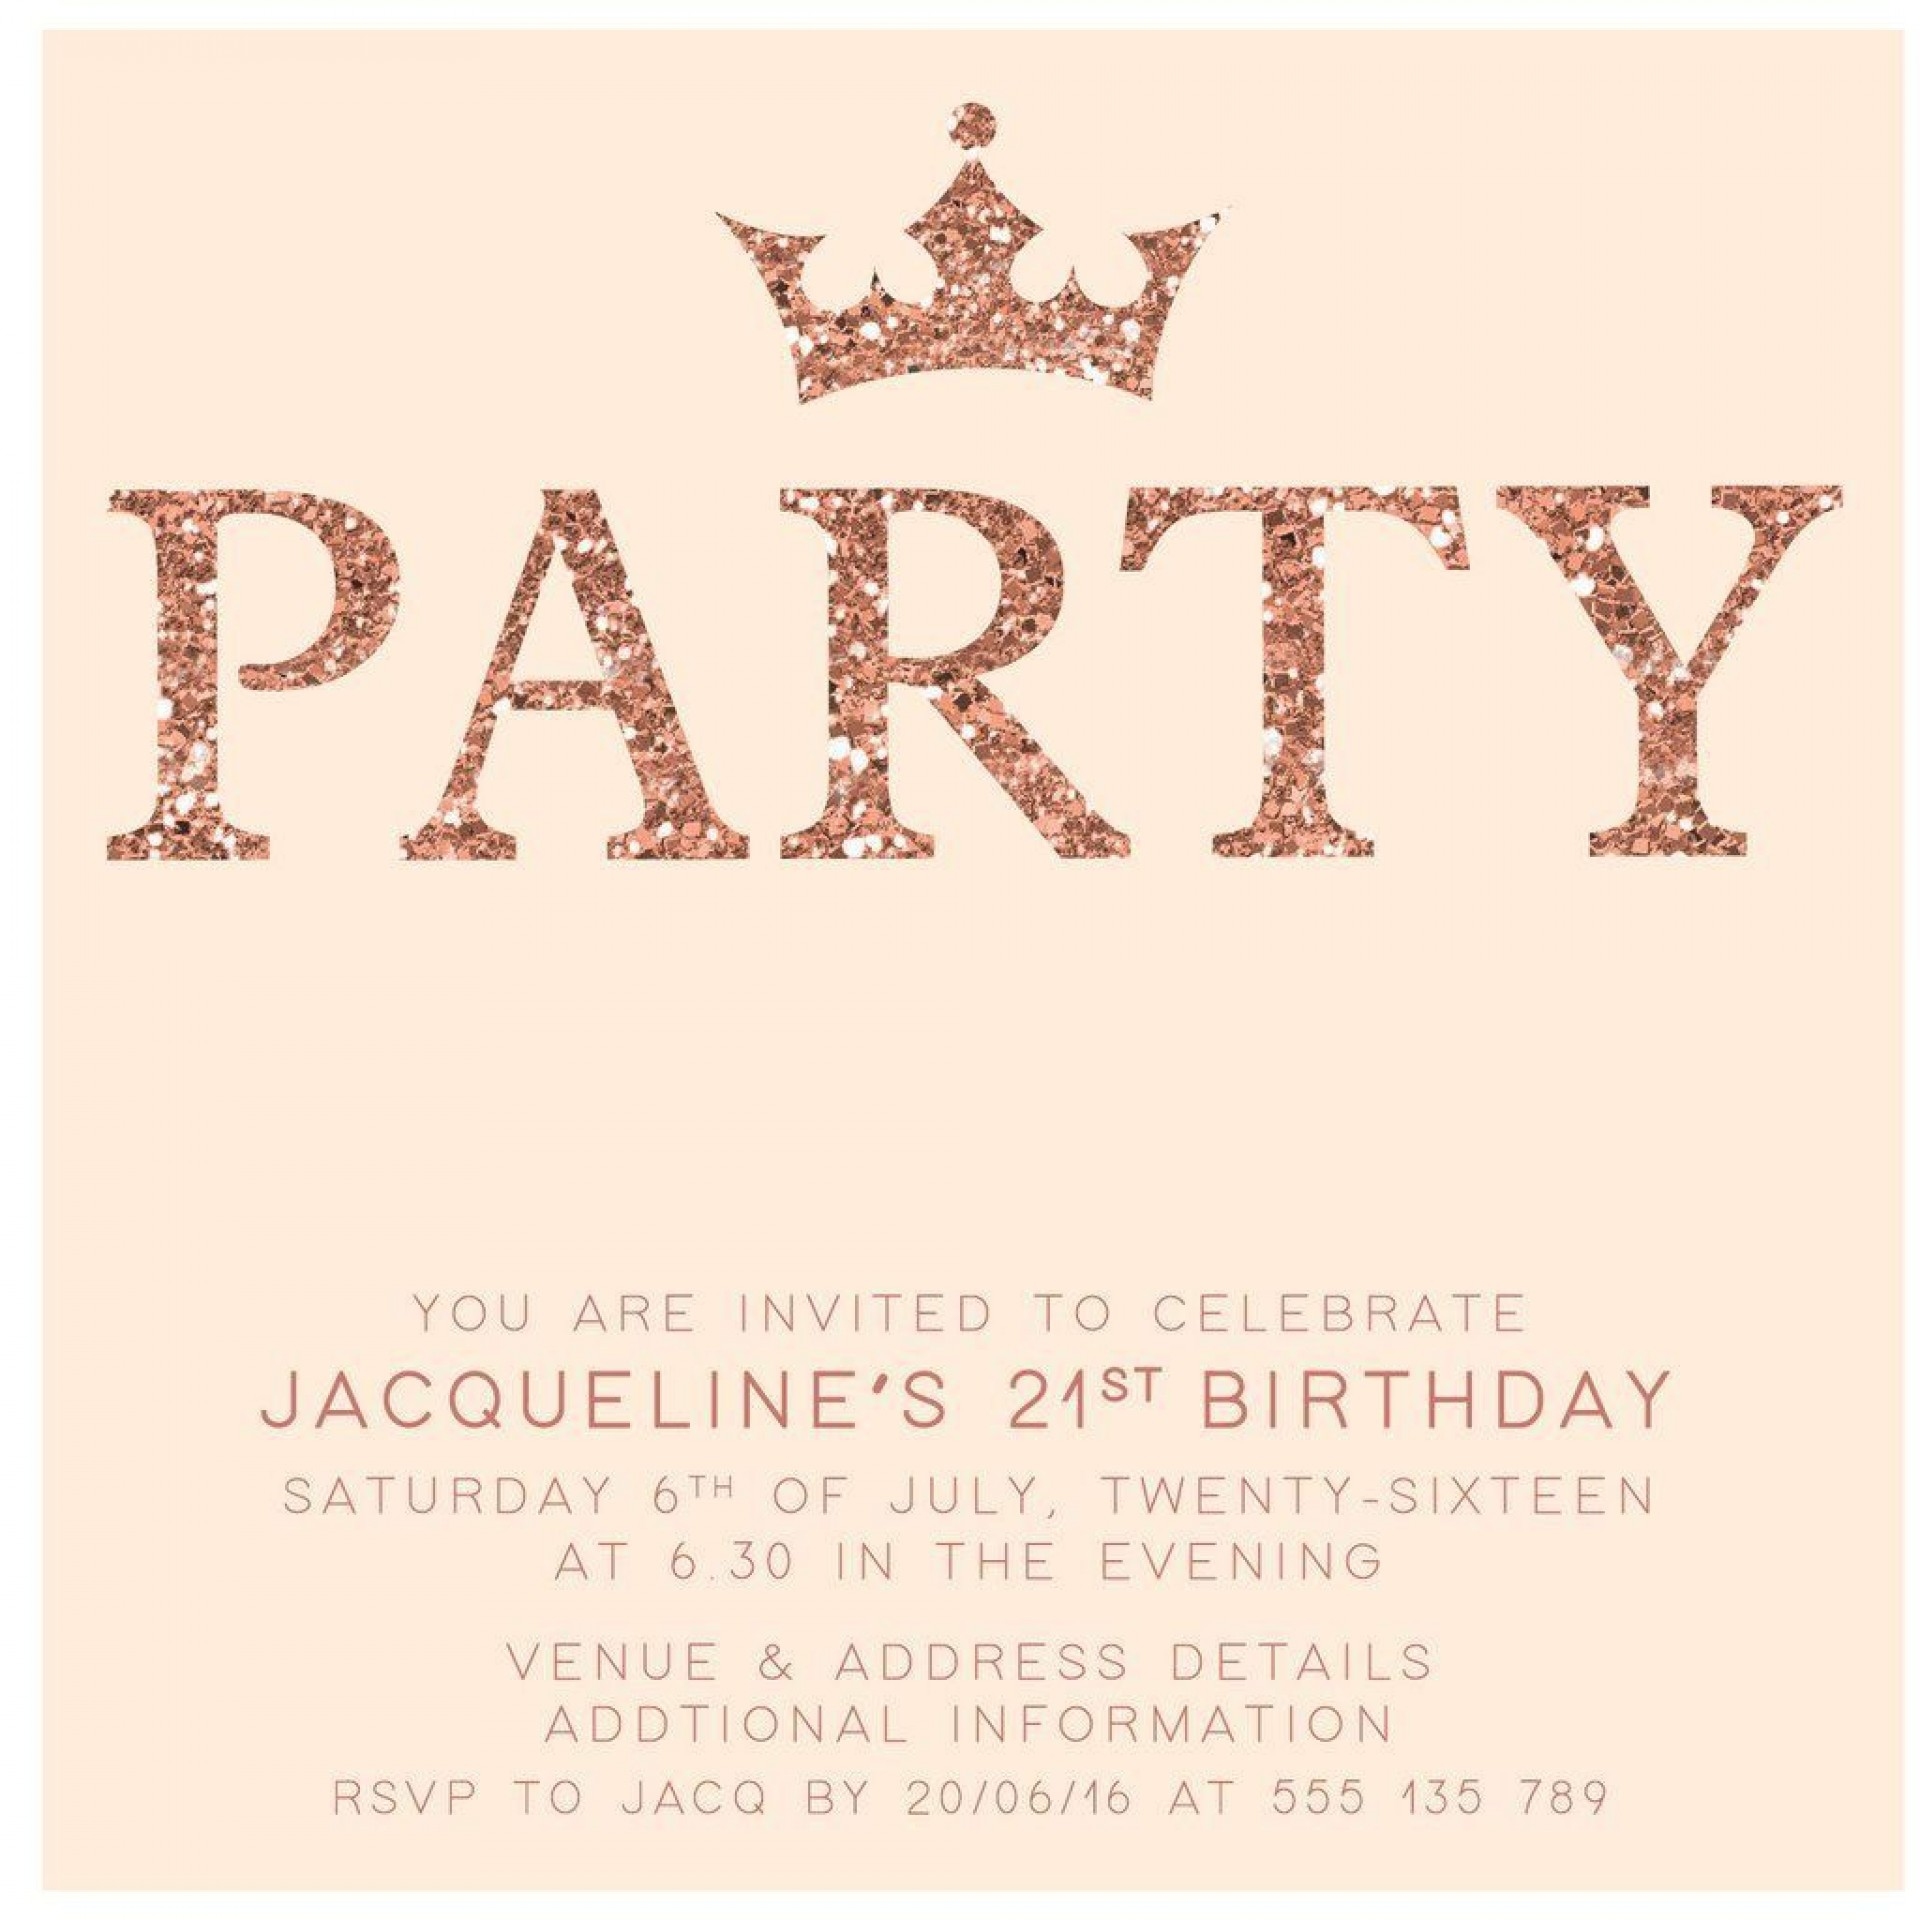 005 Awesome Free Online Invitation Template Australia Concept  Party Invite1920